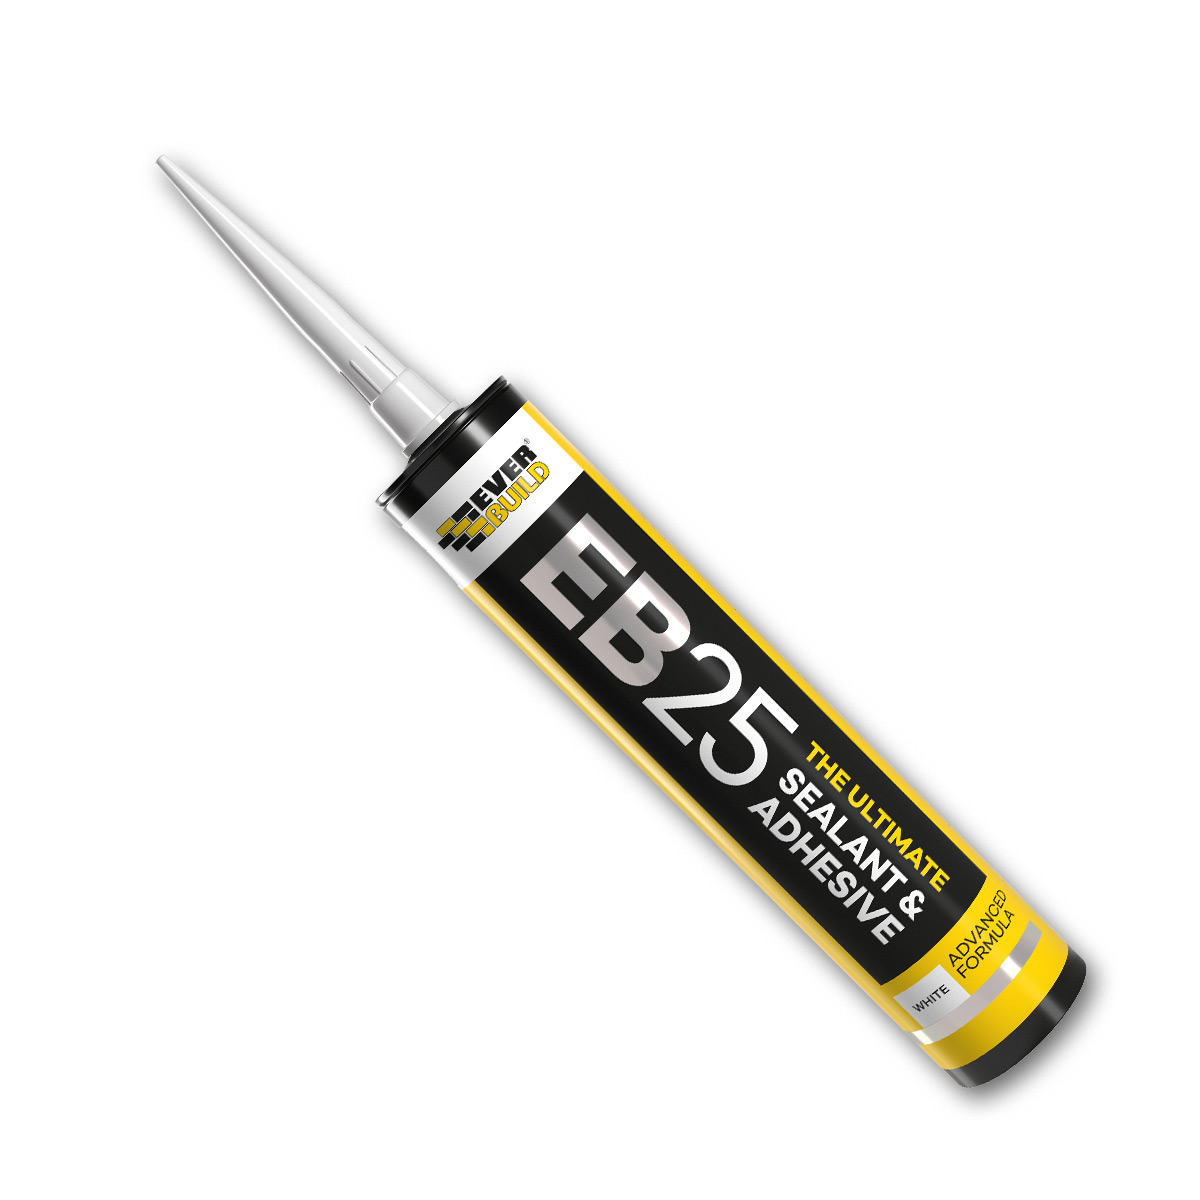 The ultimate sealant and adhesive. Perfect for attaching corner trims to composite decking.